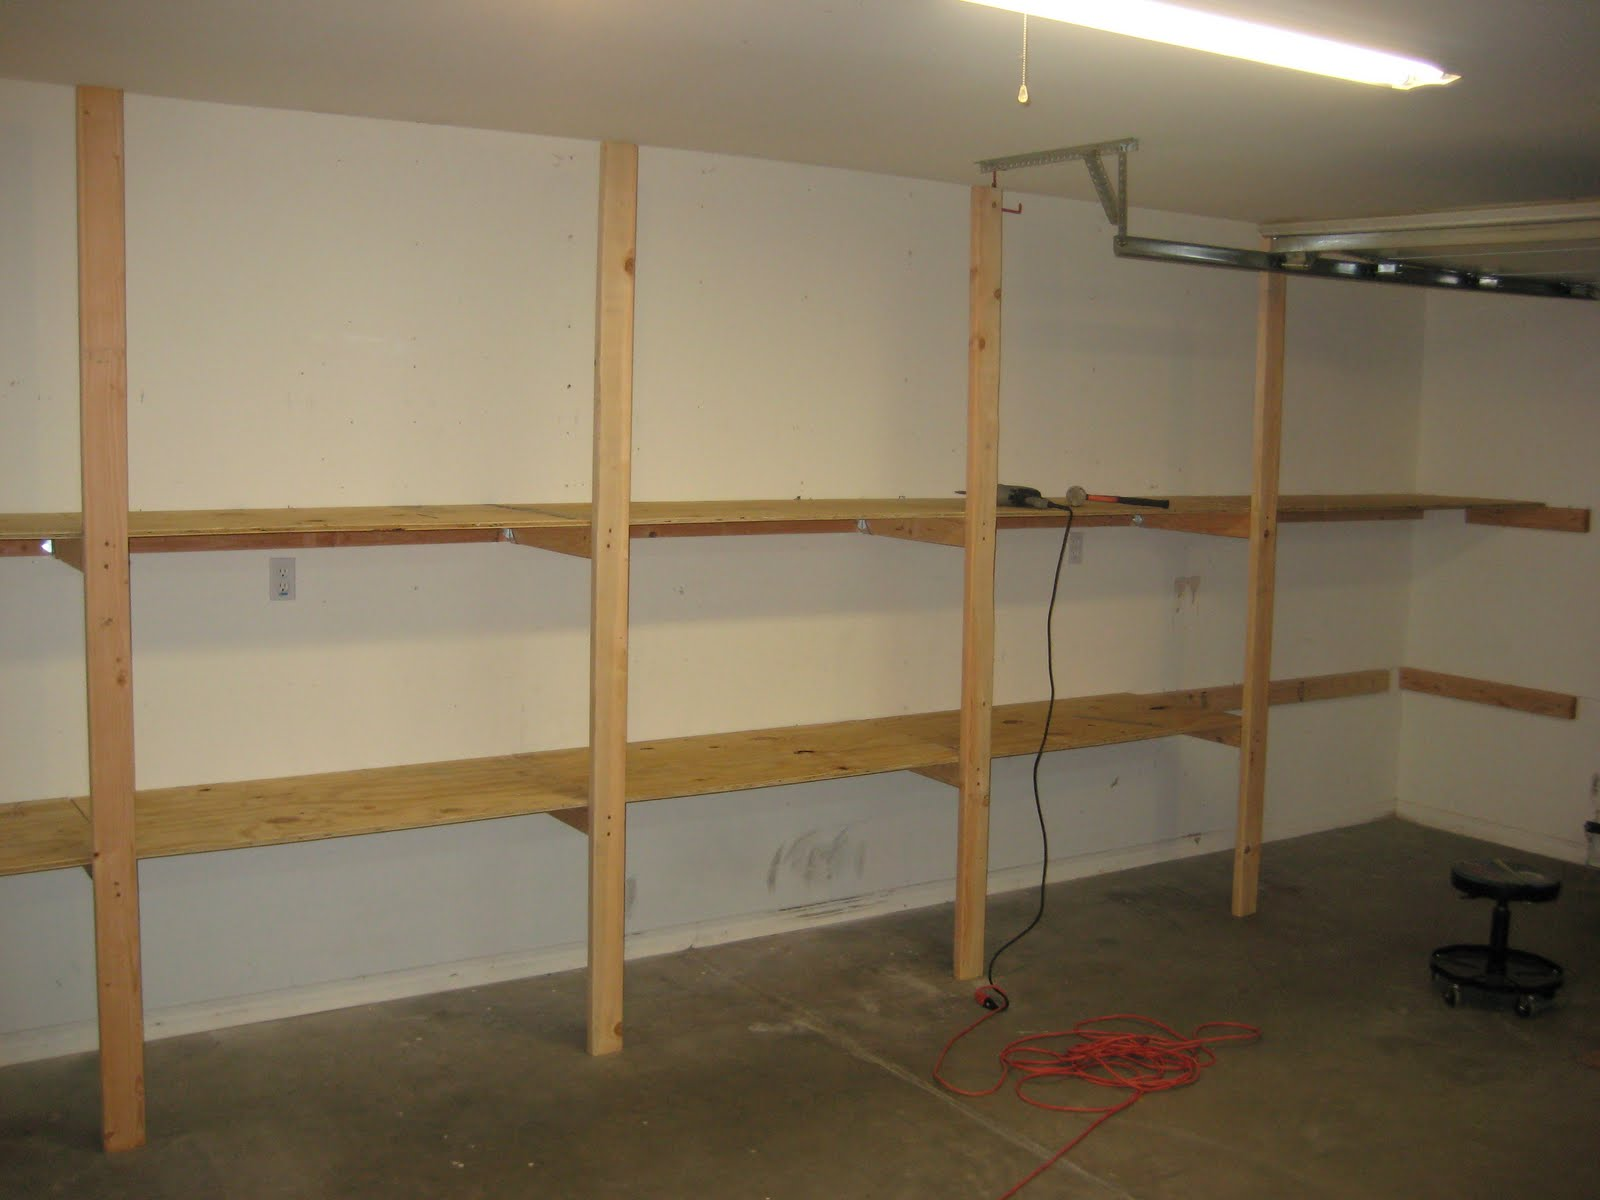 2x4 Shelves | www.woodworking.bofusfocus.com